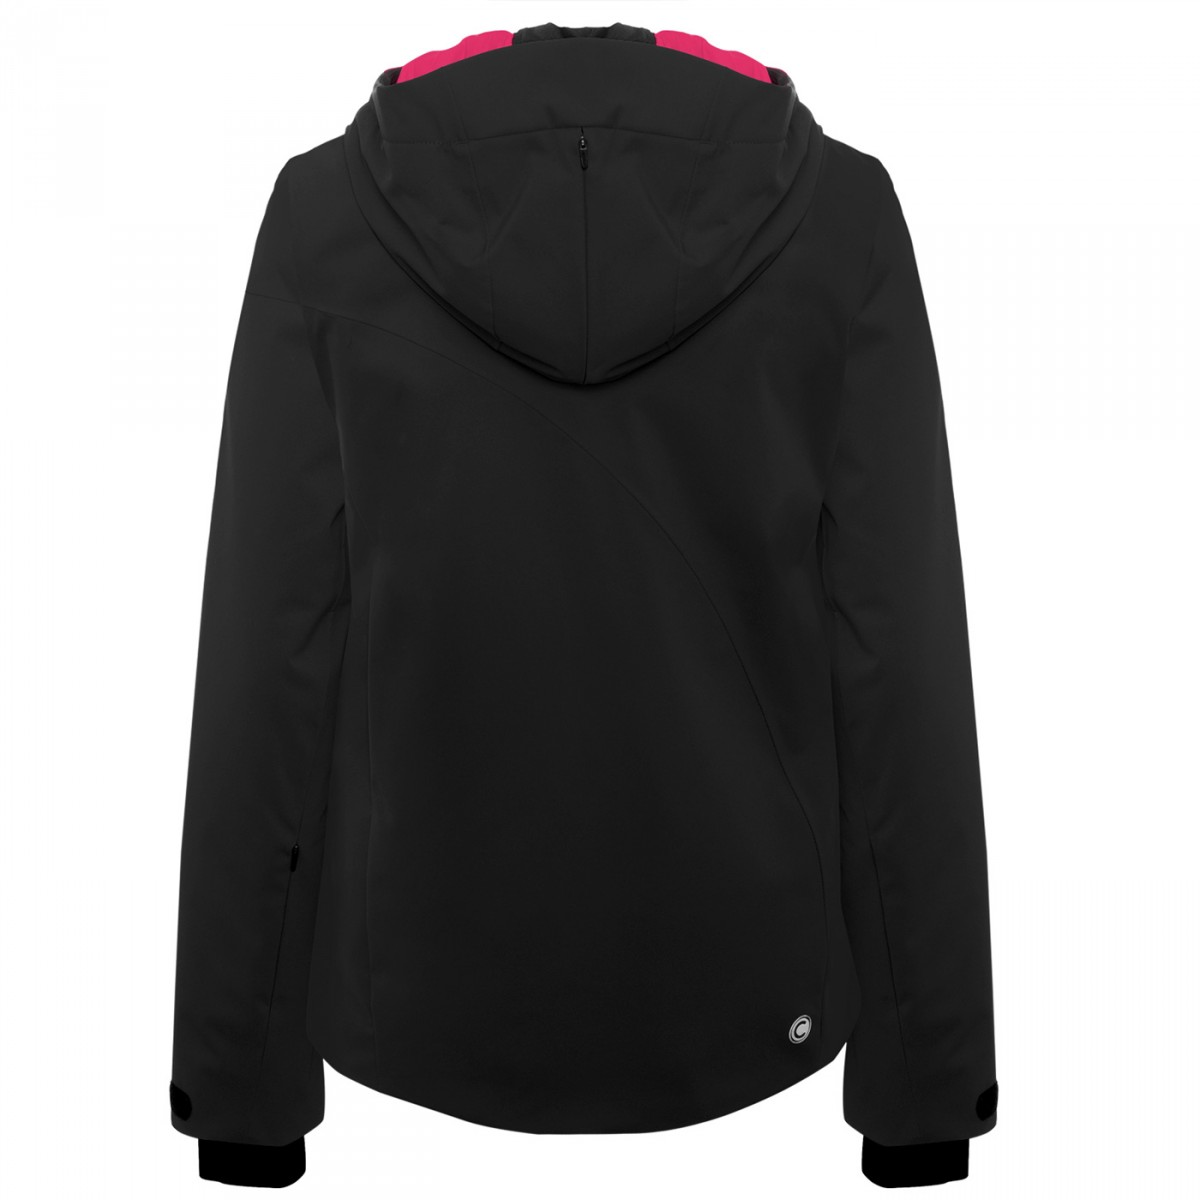 black single women in colmar Buy colmar women's down jackets online from the spring - summer 2018 collection or on sale from the outlet padded and quilted puffer jackets are available.